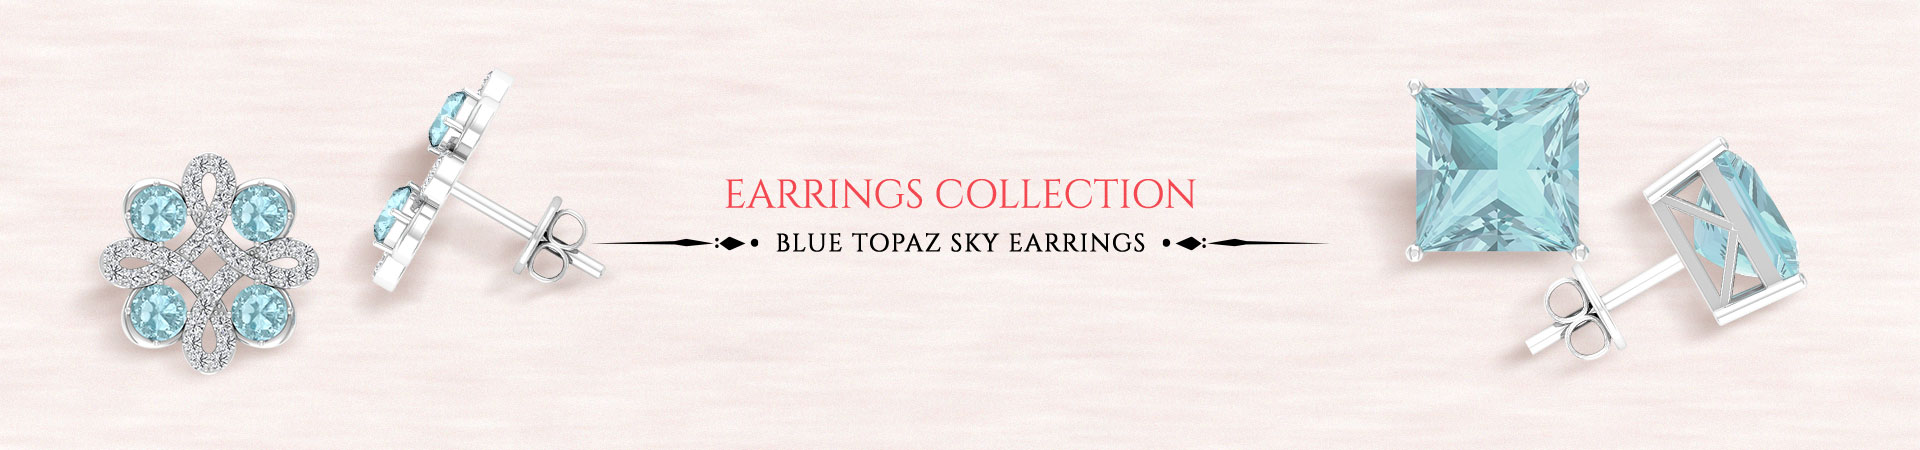 Blue Topaz Sky Earrings